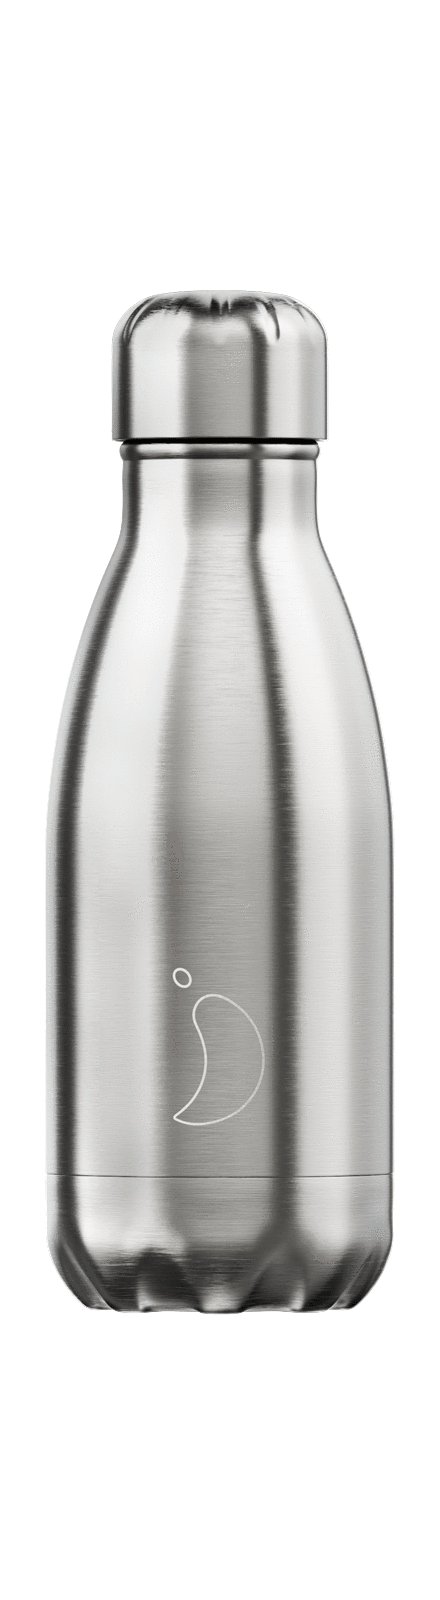 cadeauxwells - 260ml Chilly's Bottles - Stainless Steel - Chilly's Bottles - Homewares